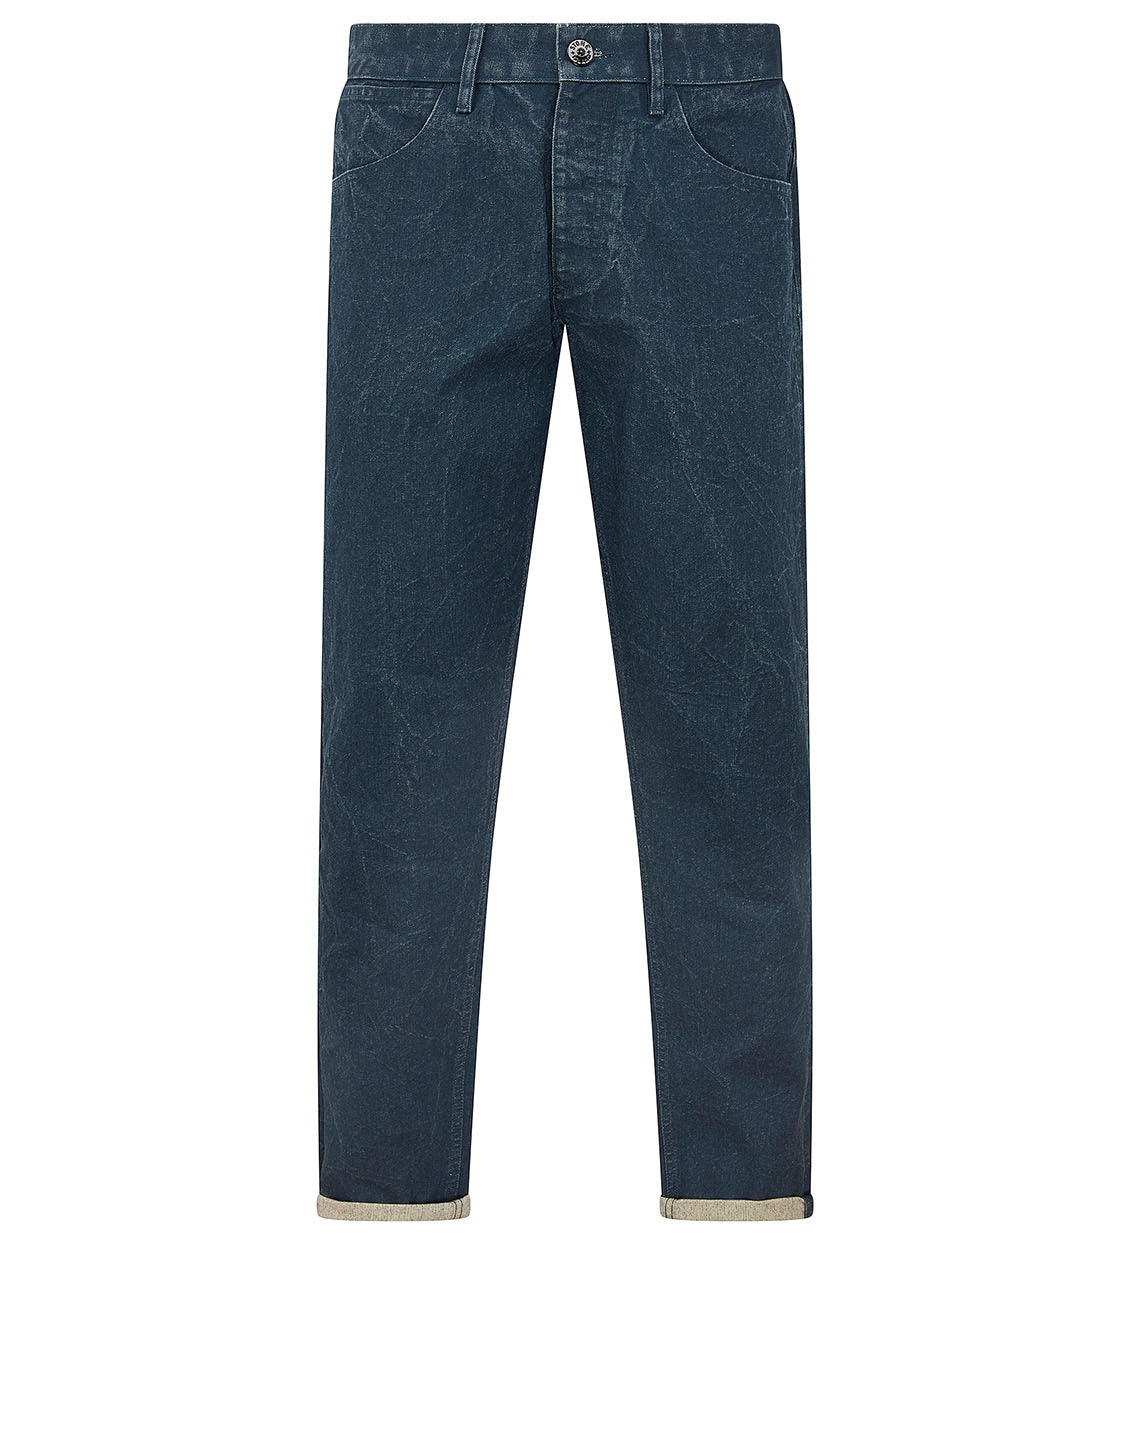 J02J1 PANAMA PLACCATO RE-T 5 Pocket Pants in Blue Marine